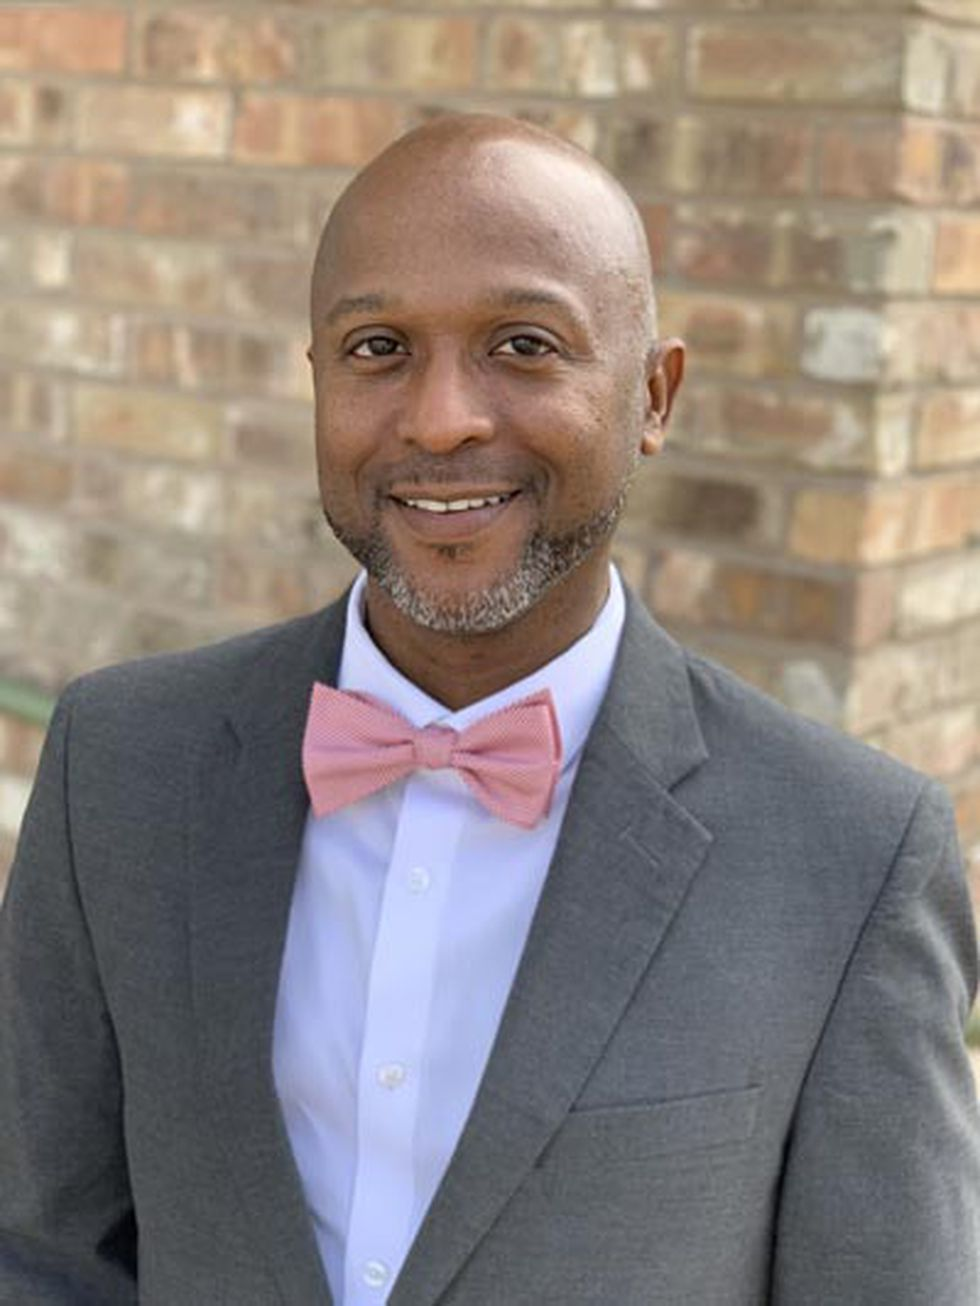 Local banker is reshaping neglected areas of Shreveport by investing in property and business...